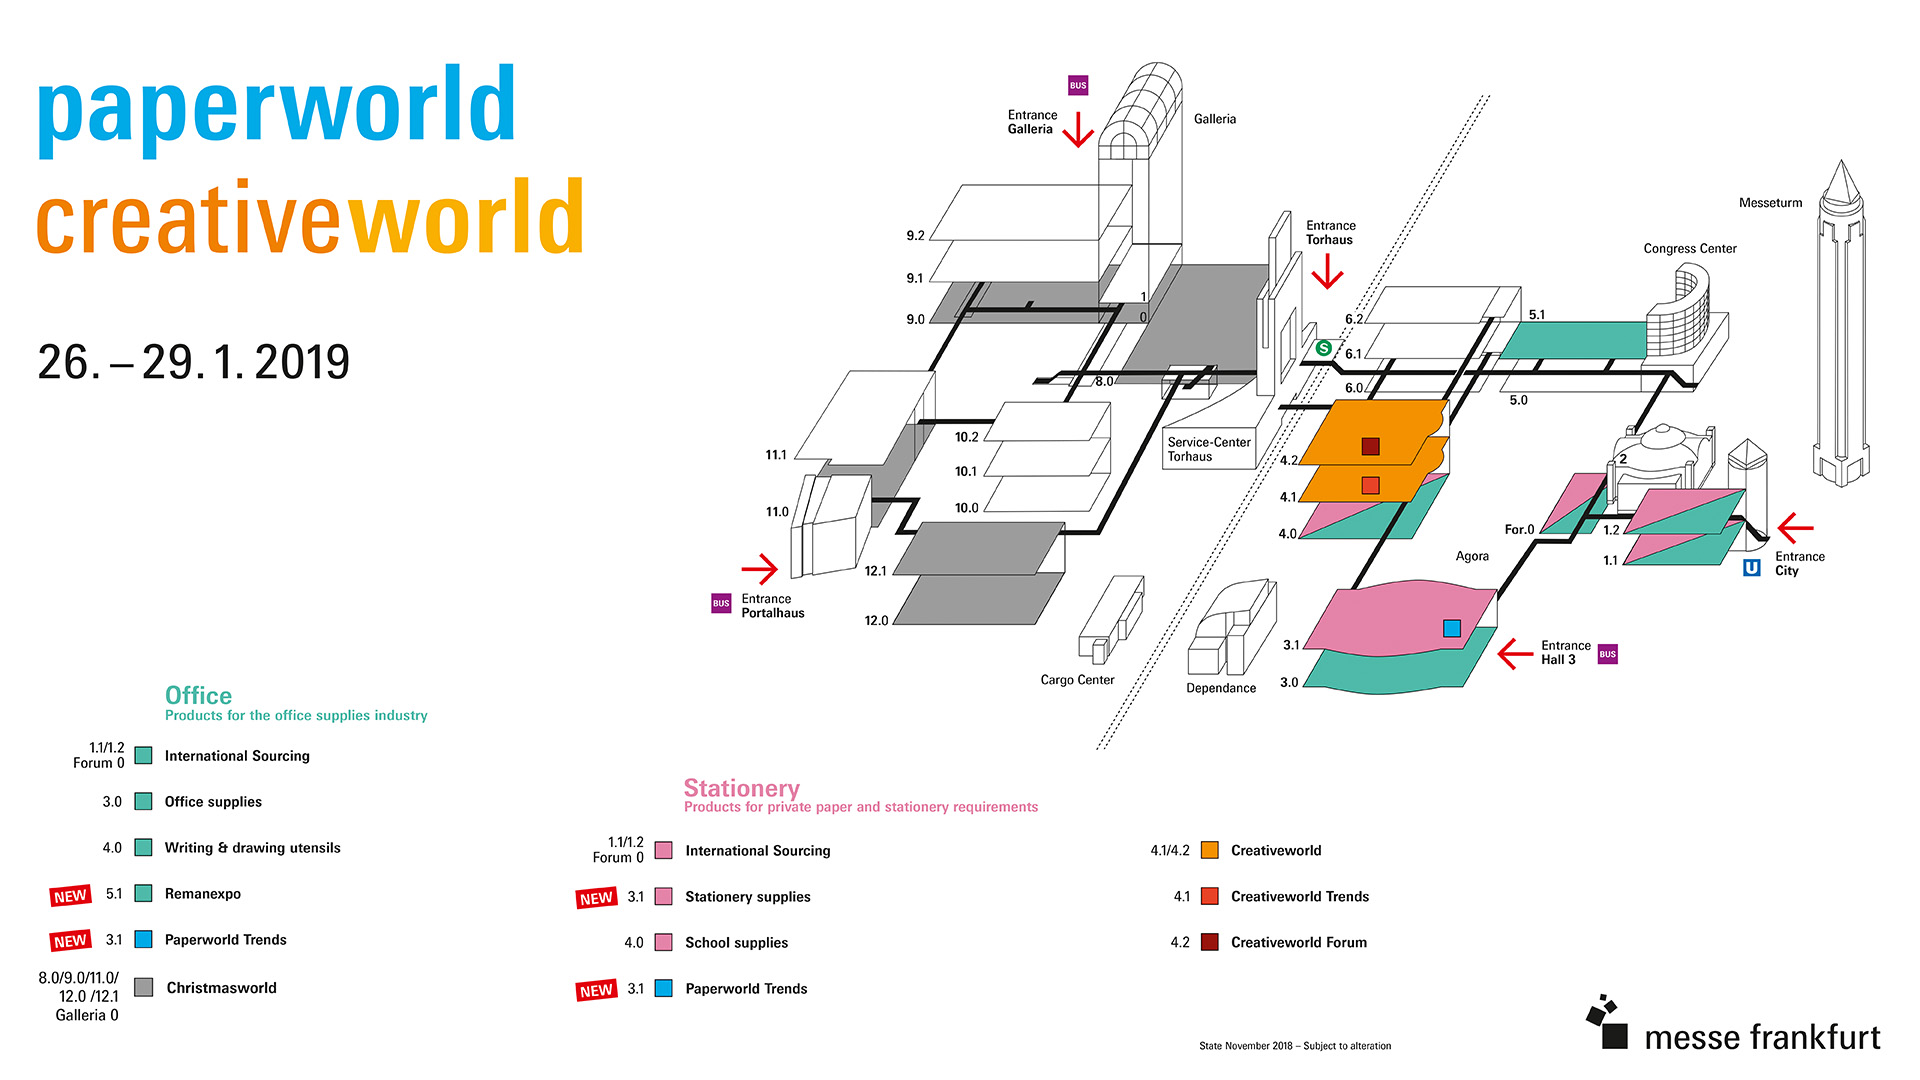 Exhibition hall plan for Paperworld and Creativeworld 2019